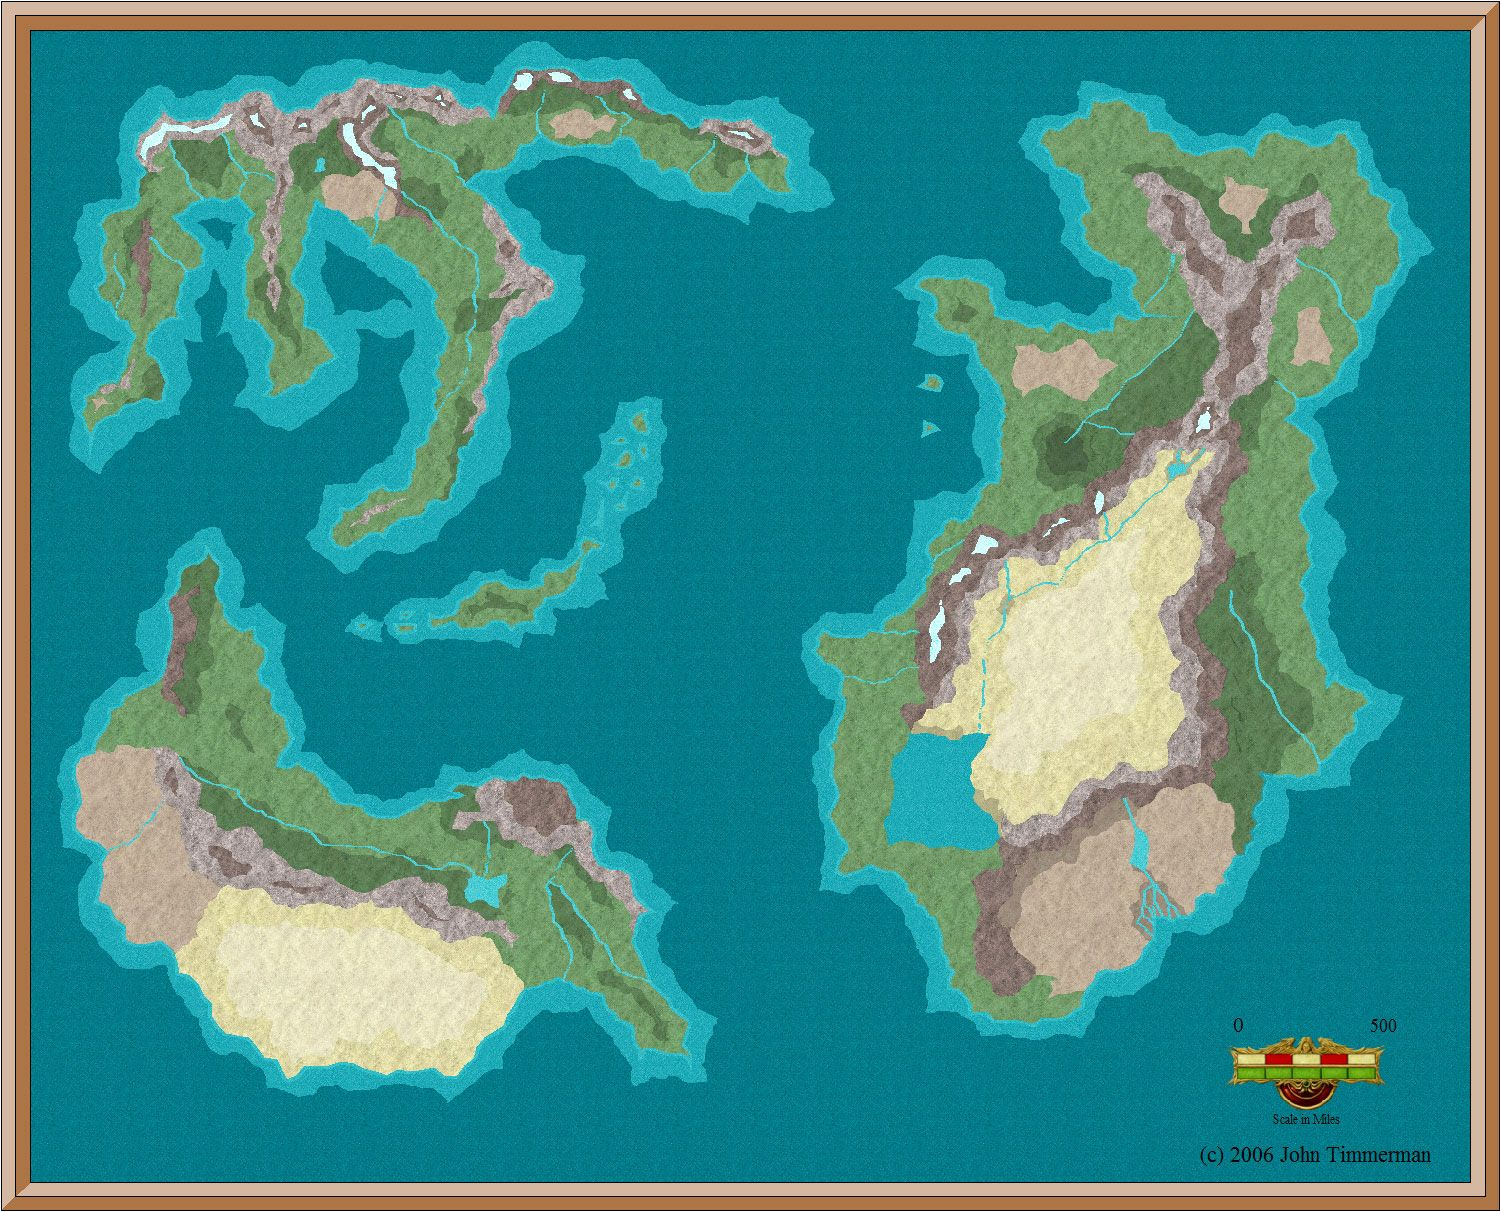 Pin by zmanyy on fantasy map pinterest fantasy map fantasy world map free fantasy maps gumiabroncs Image collections